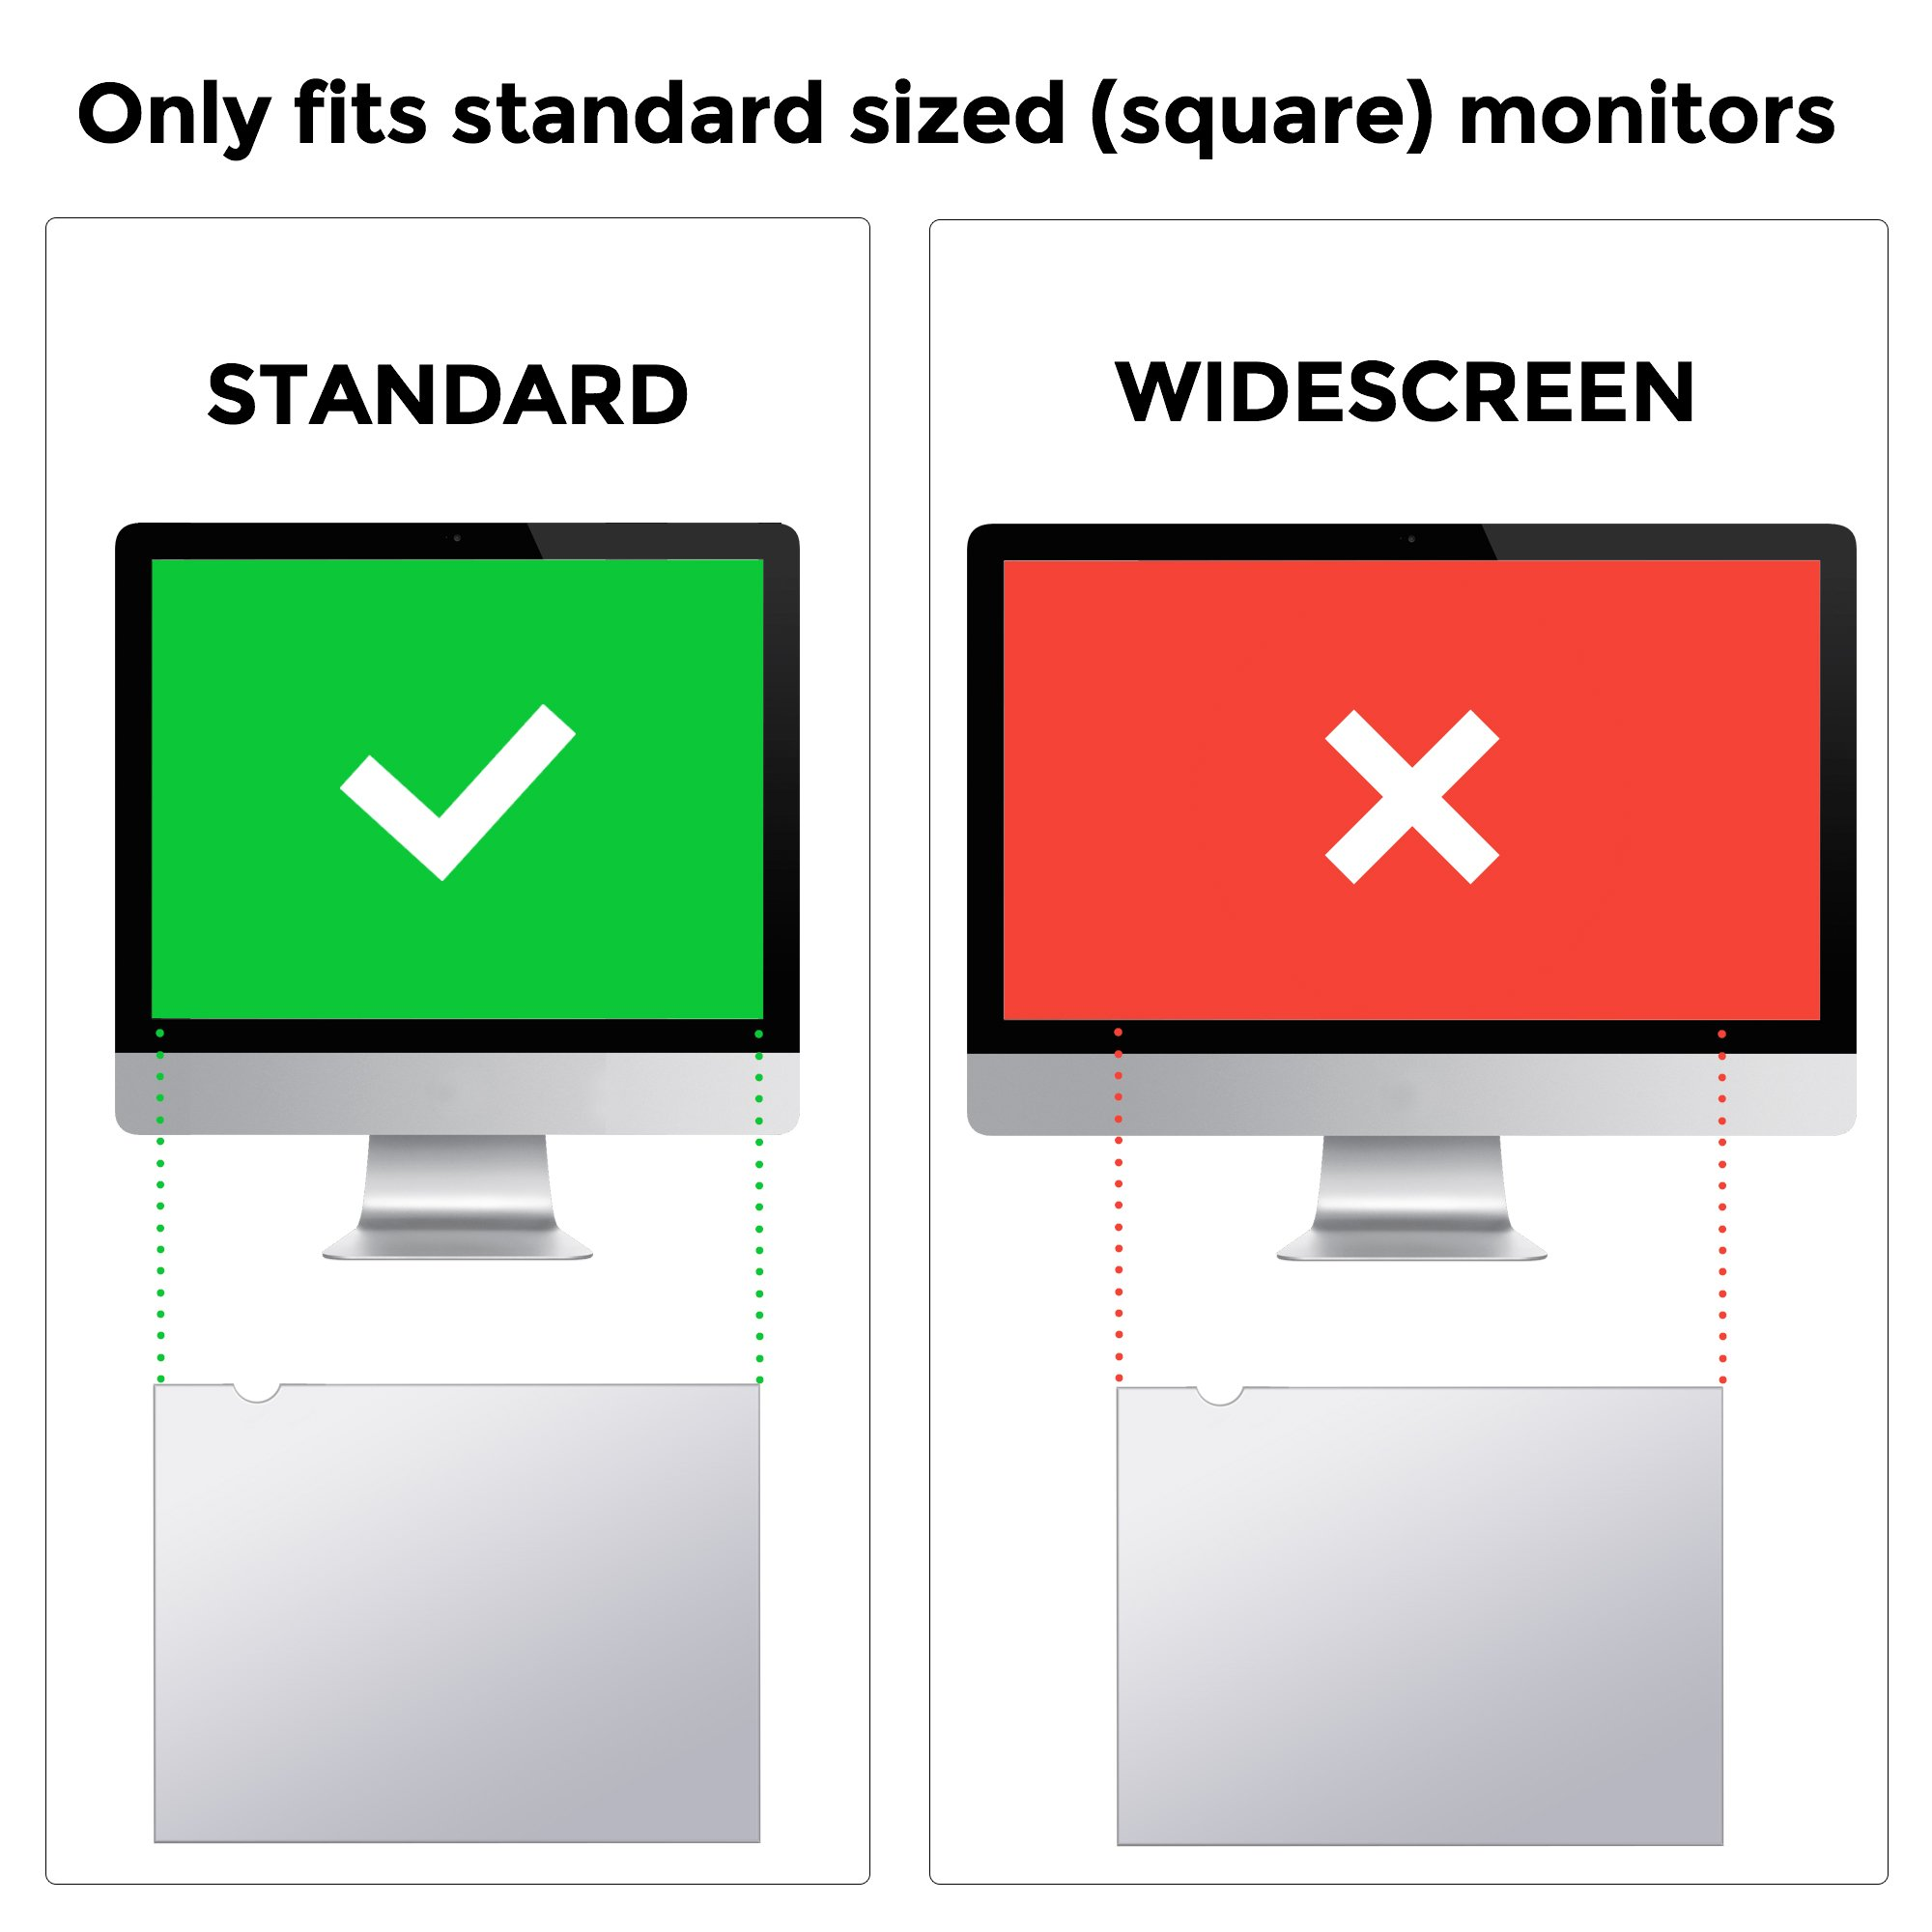 Square 19 inch (Diagonally Measured) 5:4 ratio size 14.83x11.89 inch (377x302mm) Сomputer Privacy Screen Filter for Desktop/Laptop LCD Computer Monitor, Anti-Glare. CHECK YOUR MONITOR SIZE by Privox (Image #3)